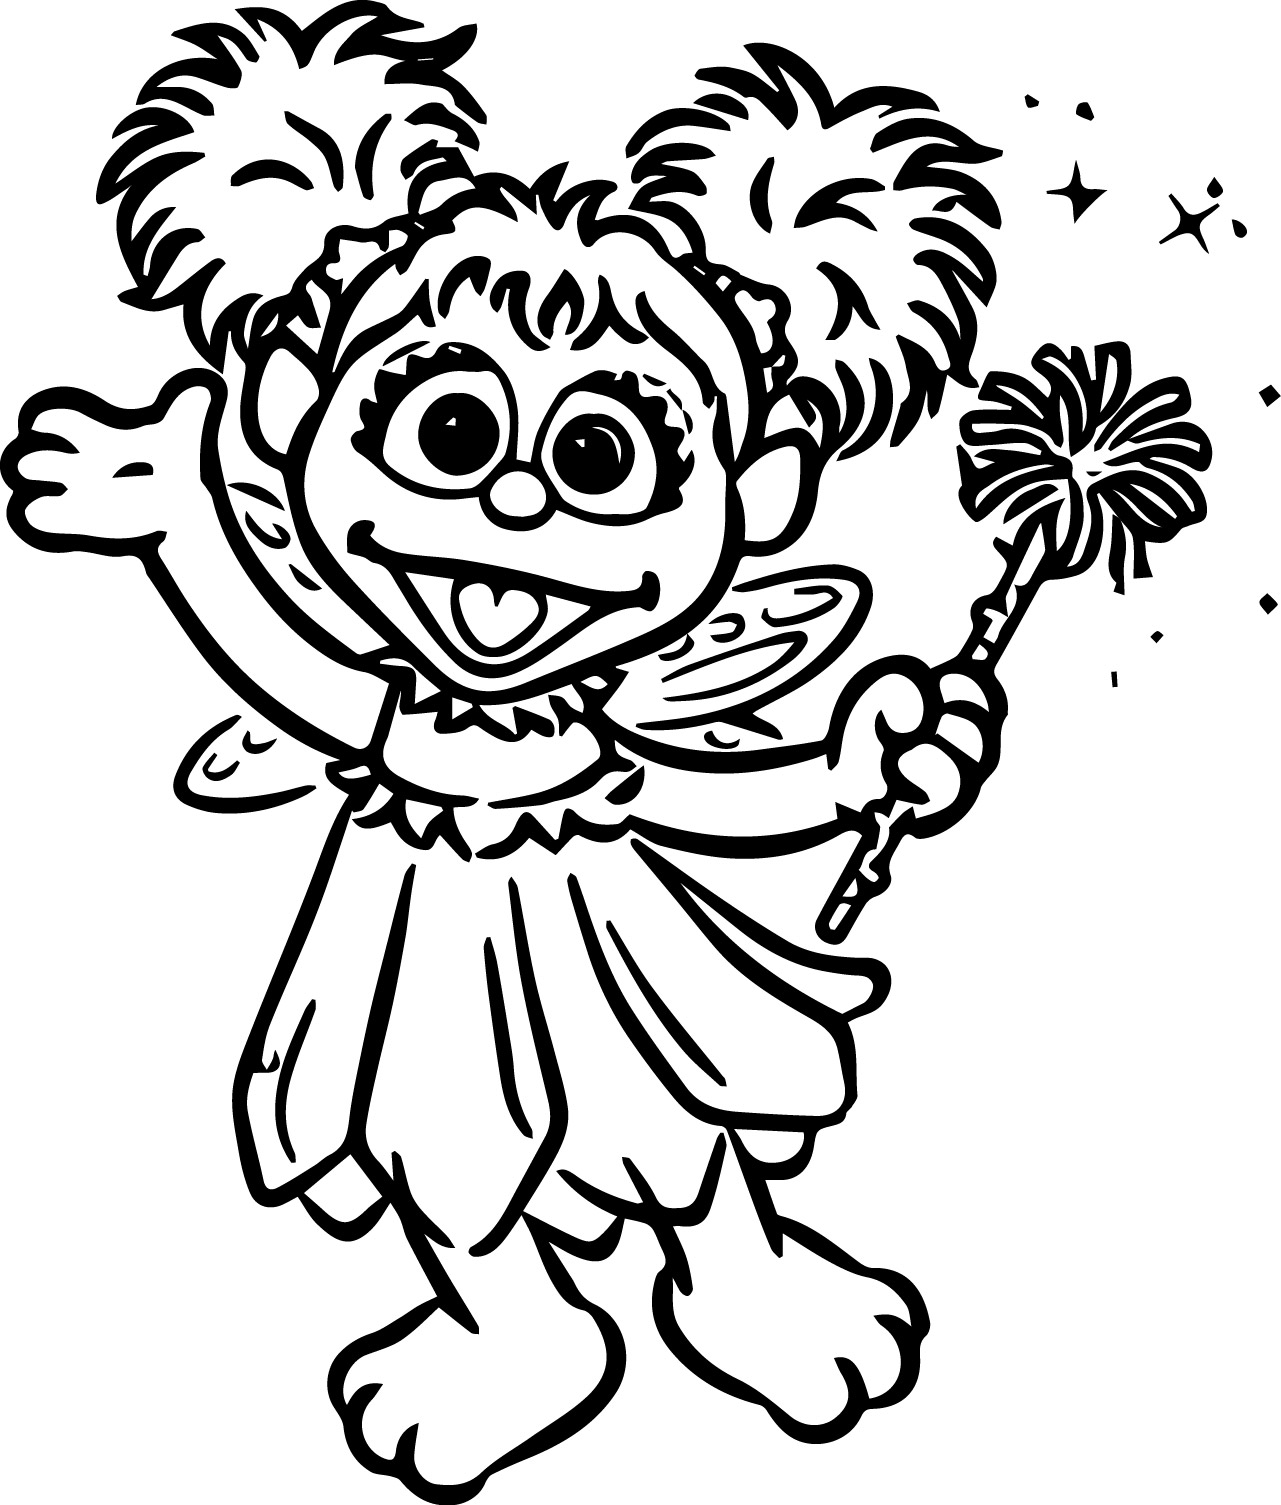 free abby cadabby printables abby cadabby coloring page e is for elmo b is for big printables free abby cadabby